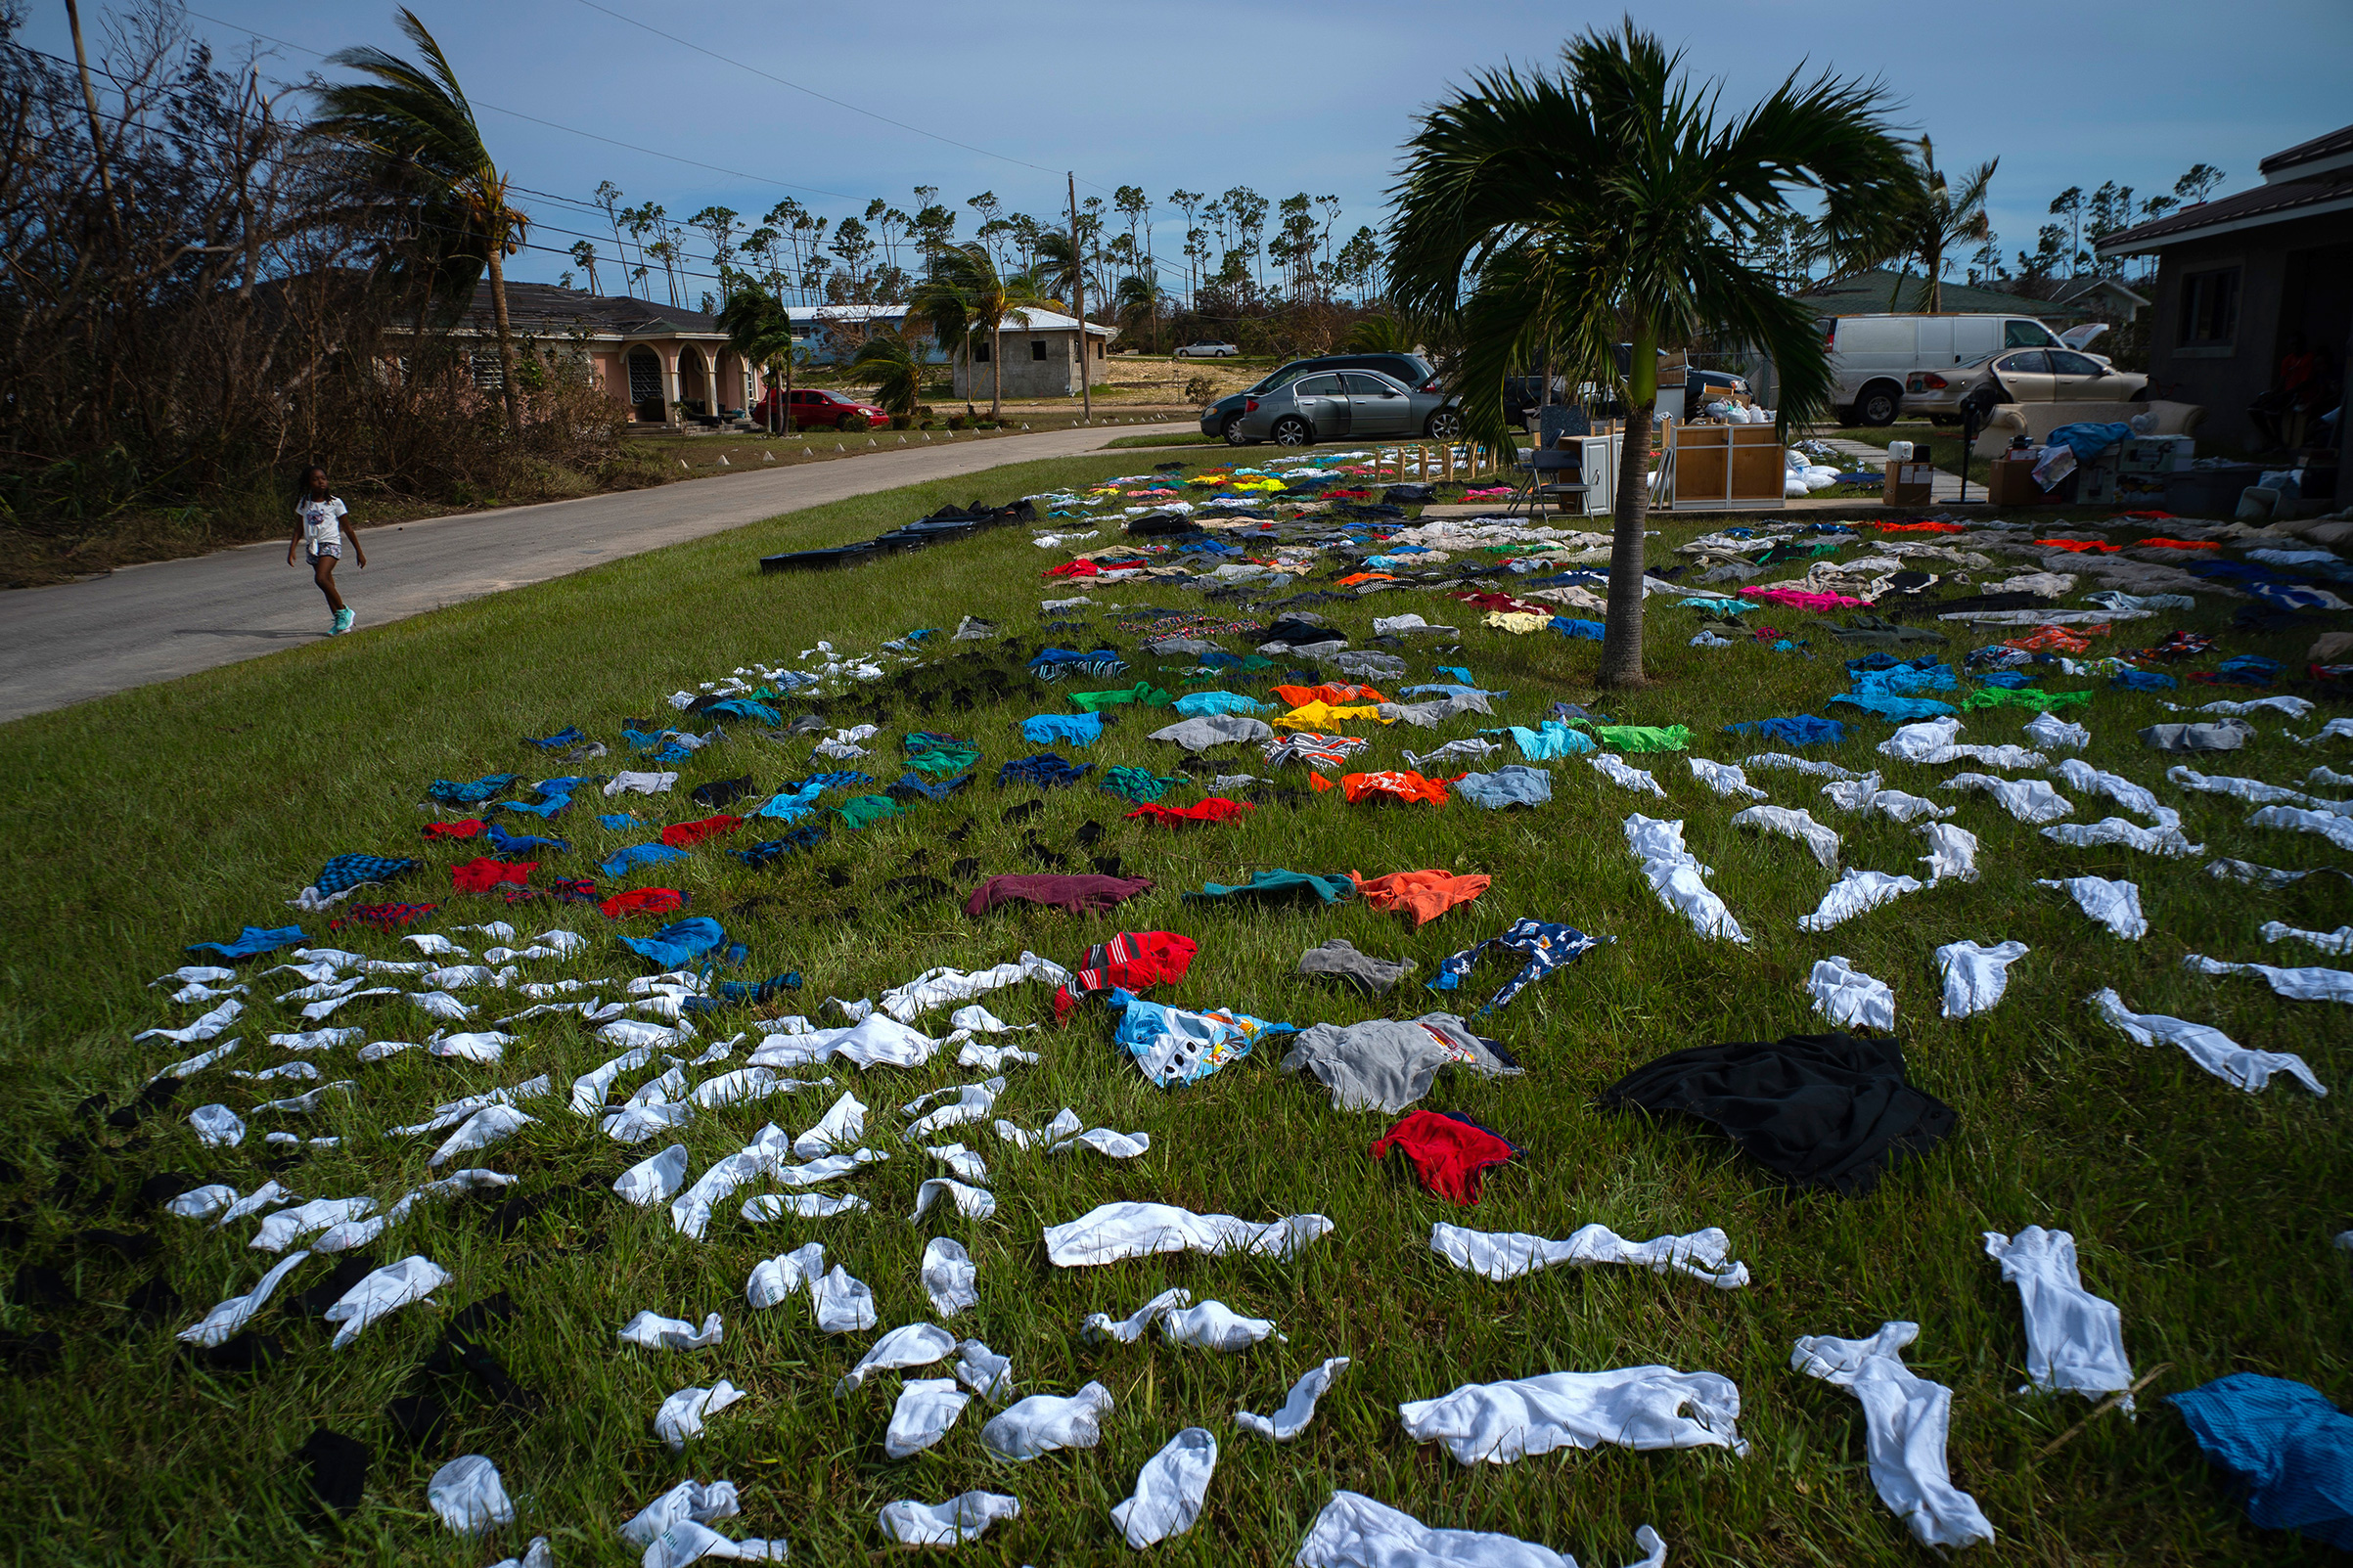 A child walks past clothes laid out to dry on a field in the aftermath of Hurricane Dorian in the Arden Forest neighborhood of Freeport, Bahamas, Sept. 4, 2019.